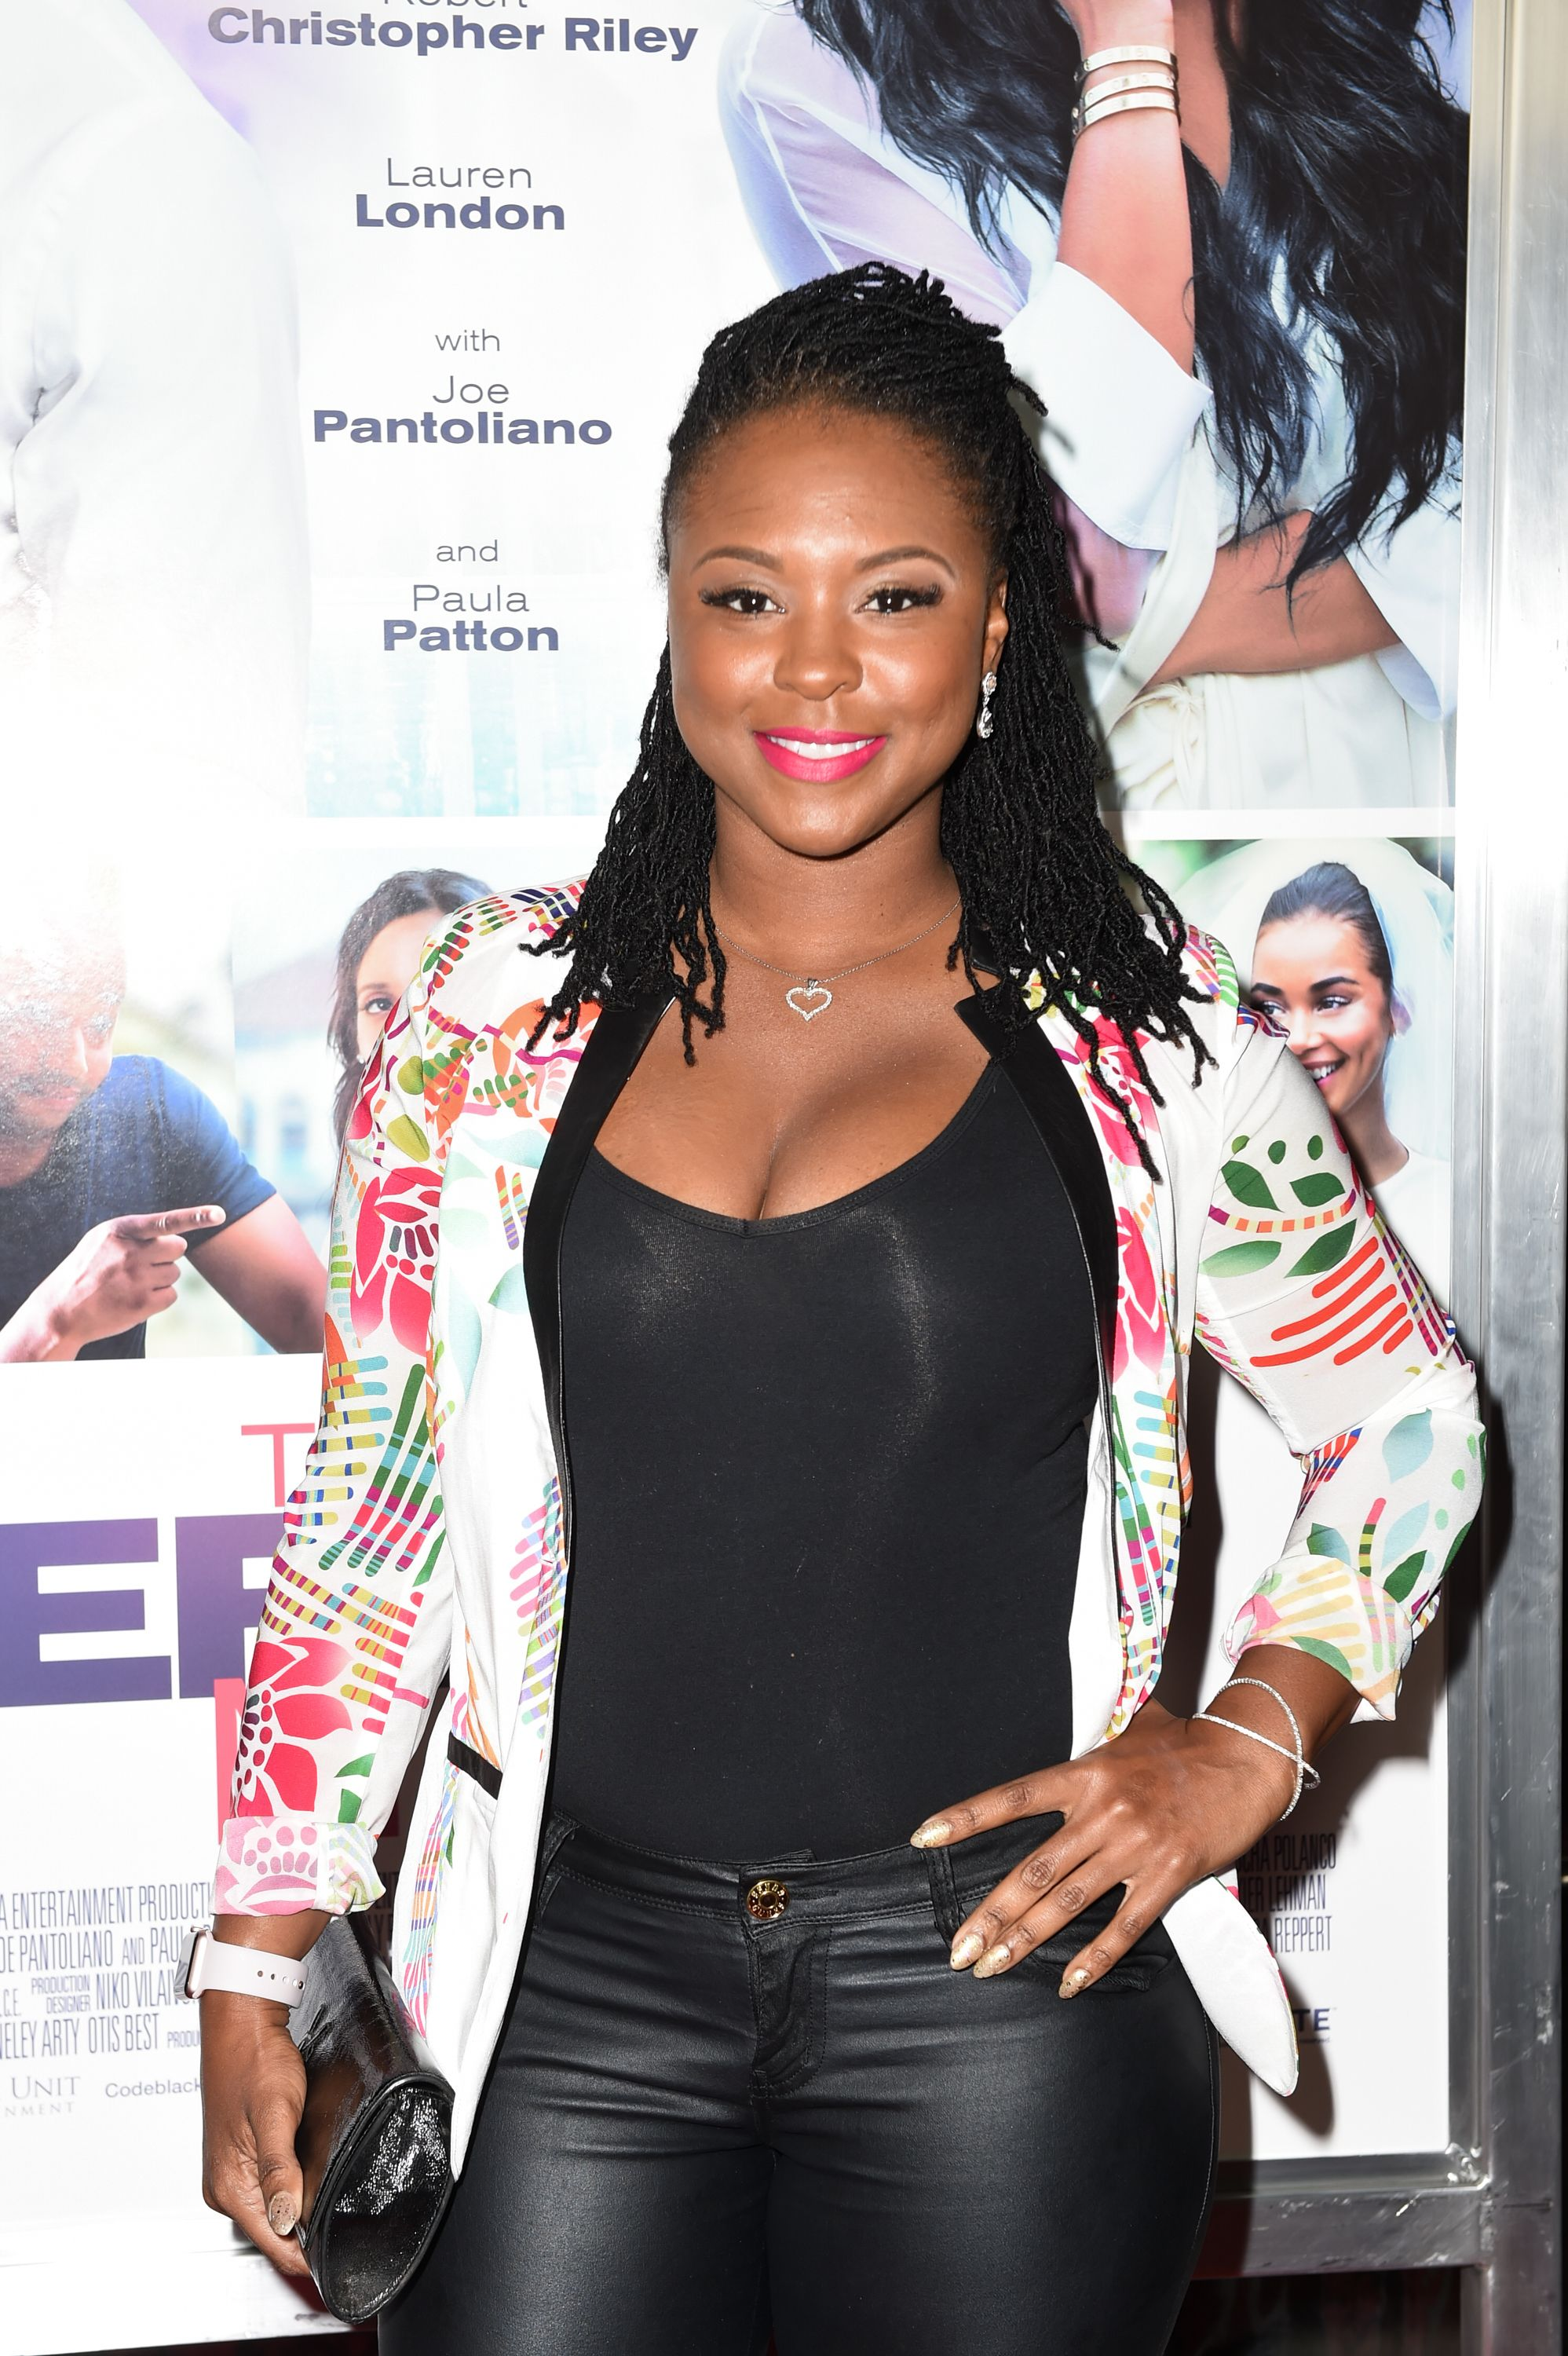 Torrei Hart during the premiere of Lionsgate's 'The Perfect Match' at ArcLight Hollywood on March 7, 2016 in Hollywood, California. | Source: Getty Images